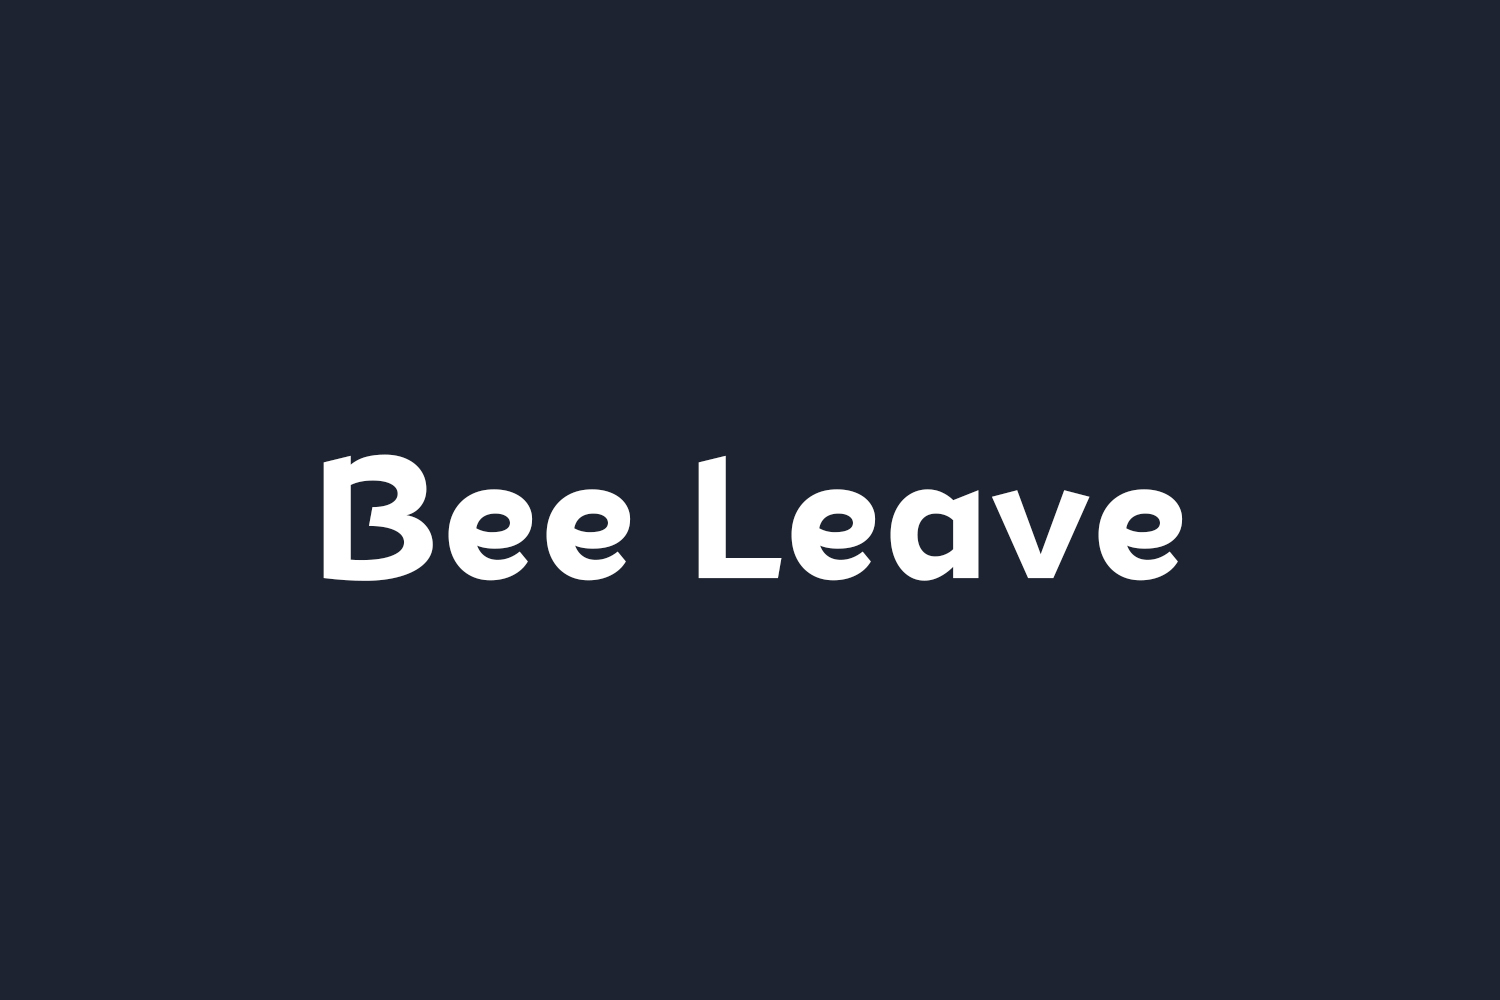 Bee Leave Free Font